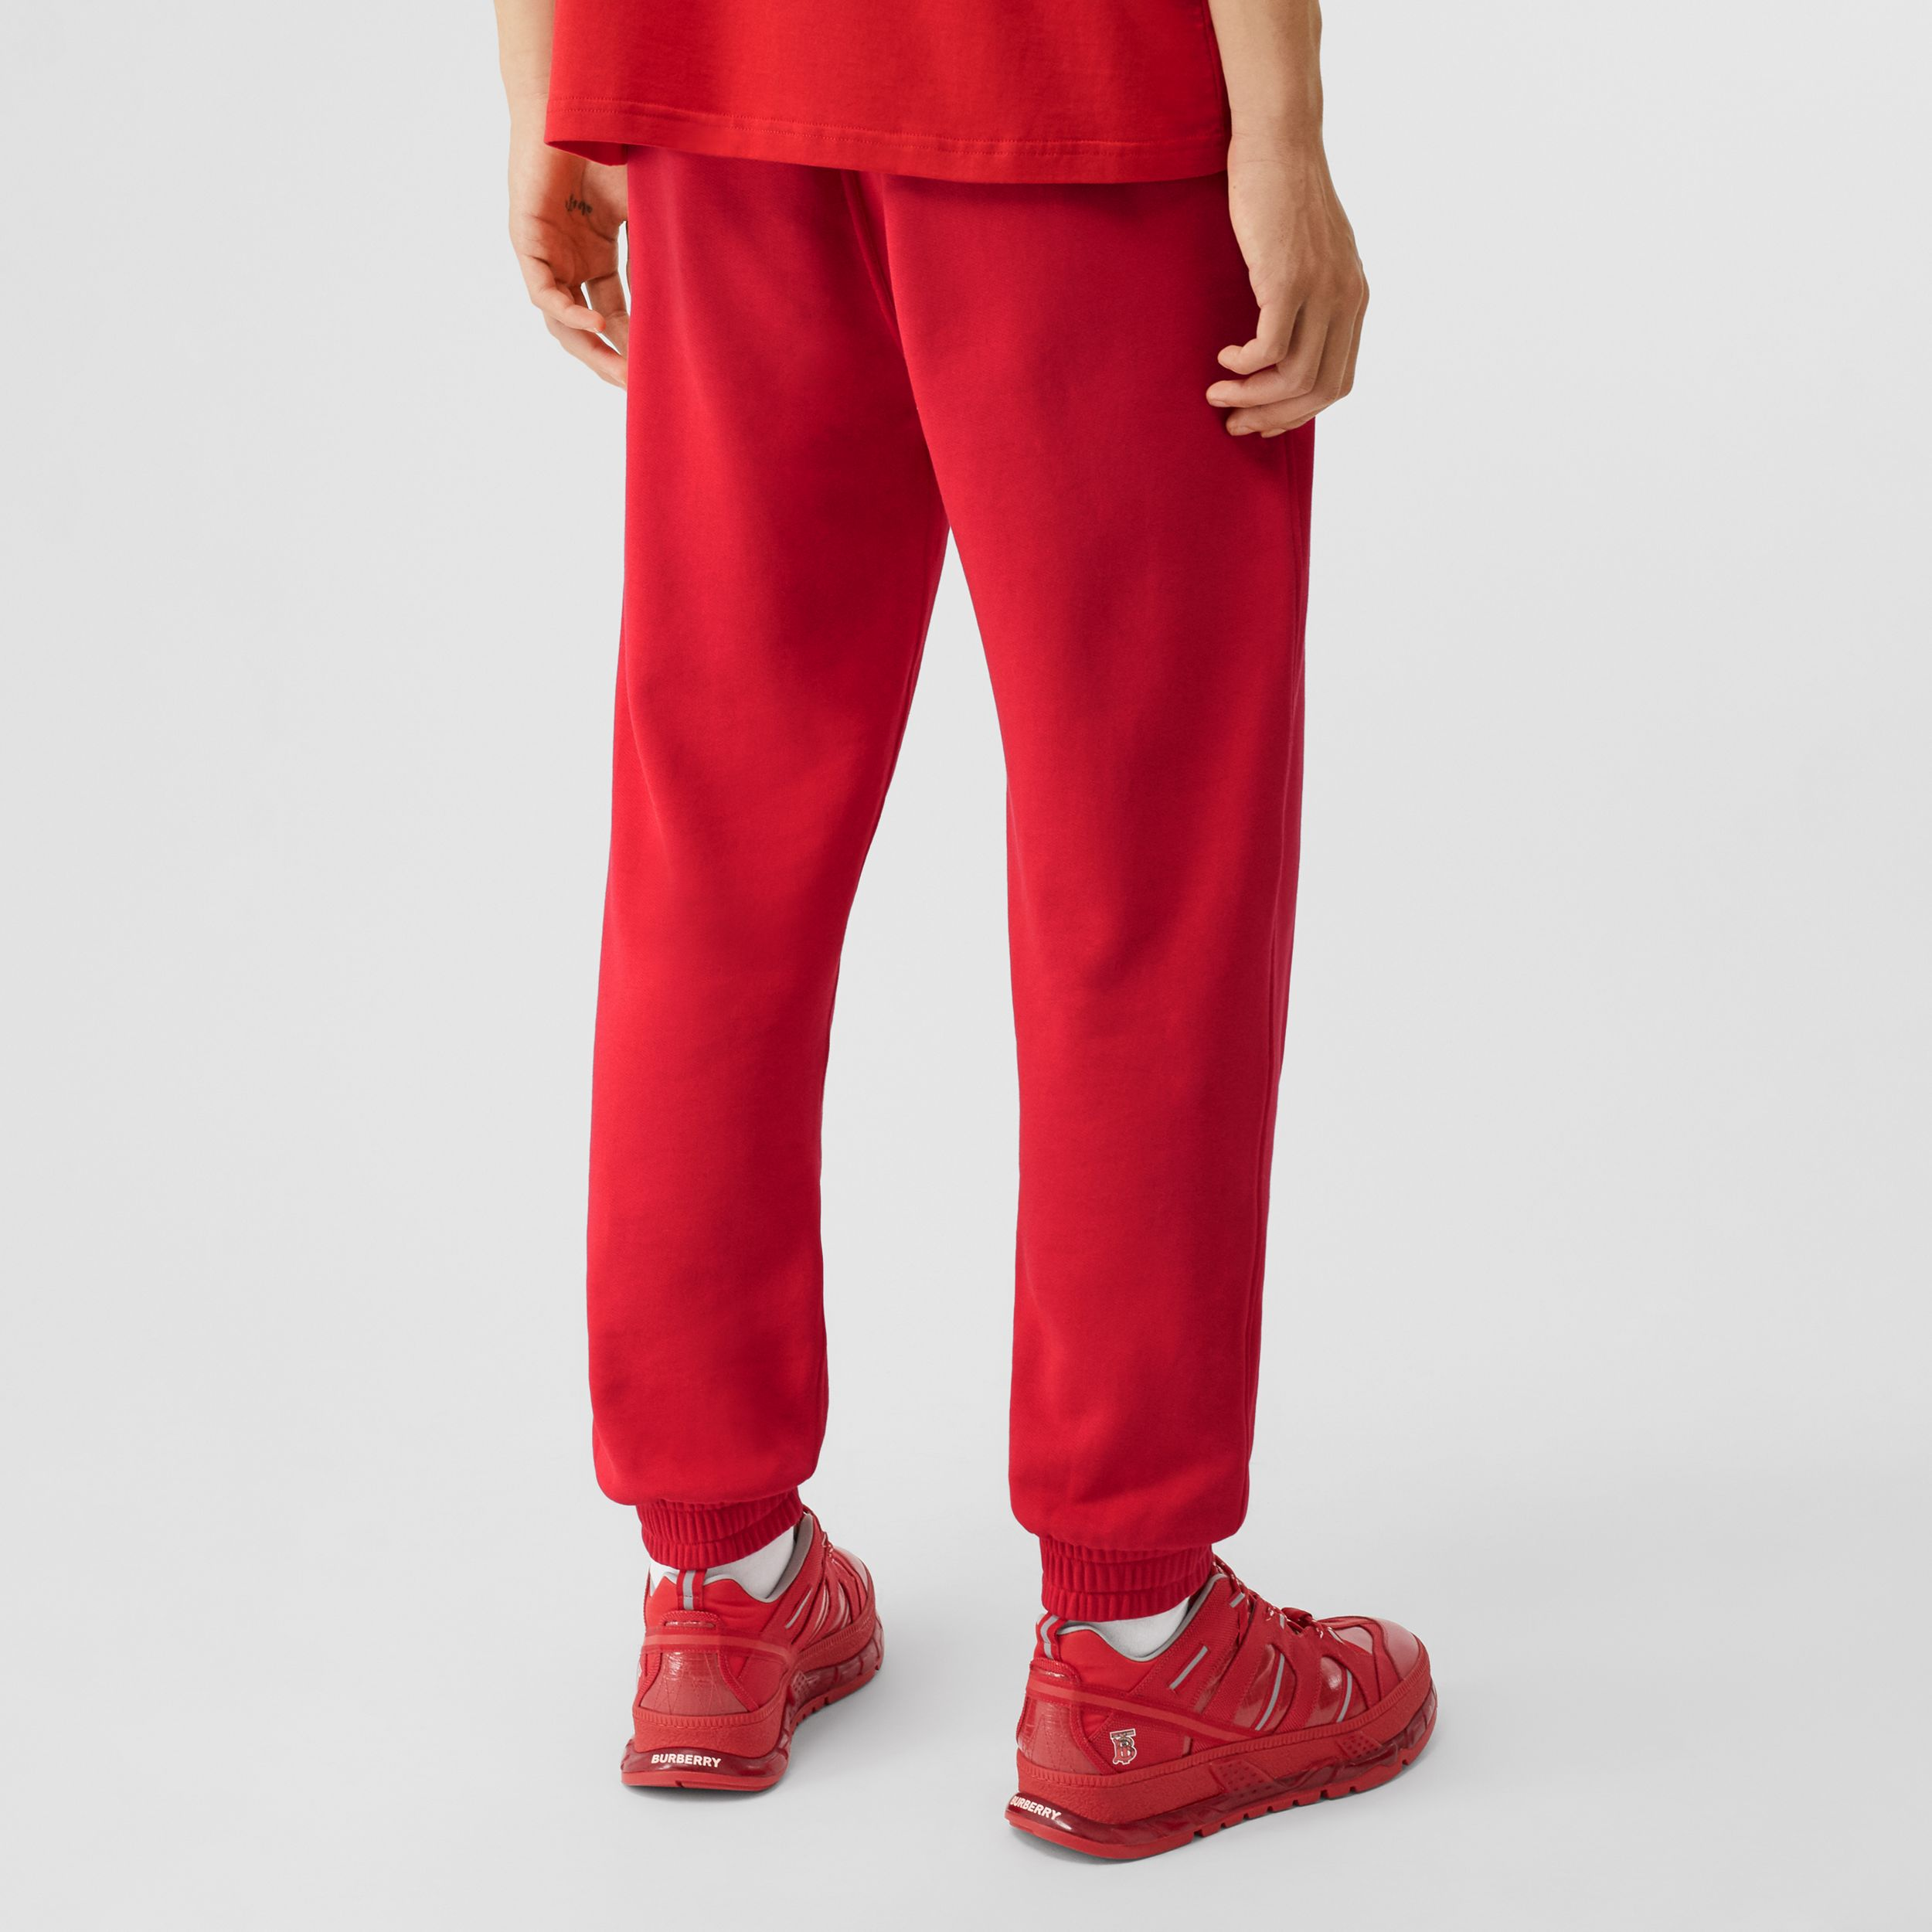 Monogram Motif Cotton Jogging Pants in Bright Red - Men | Burberry - 3